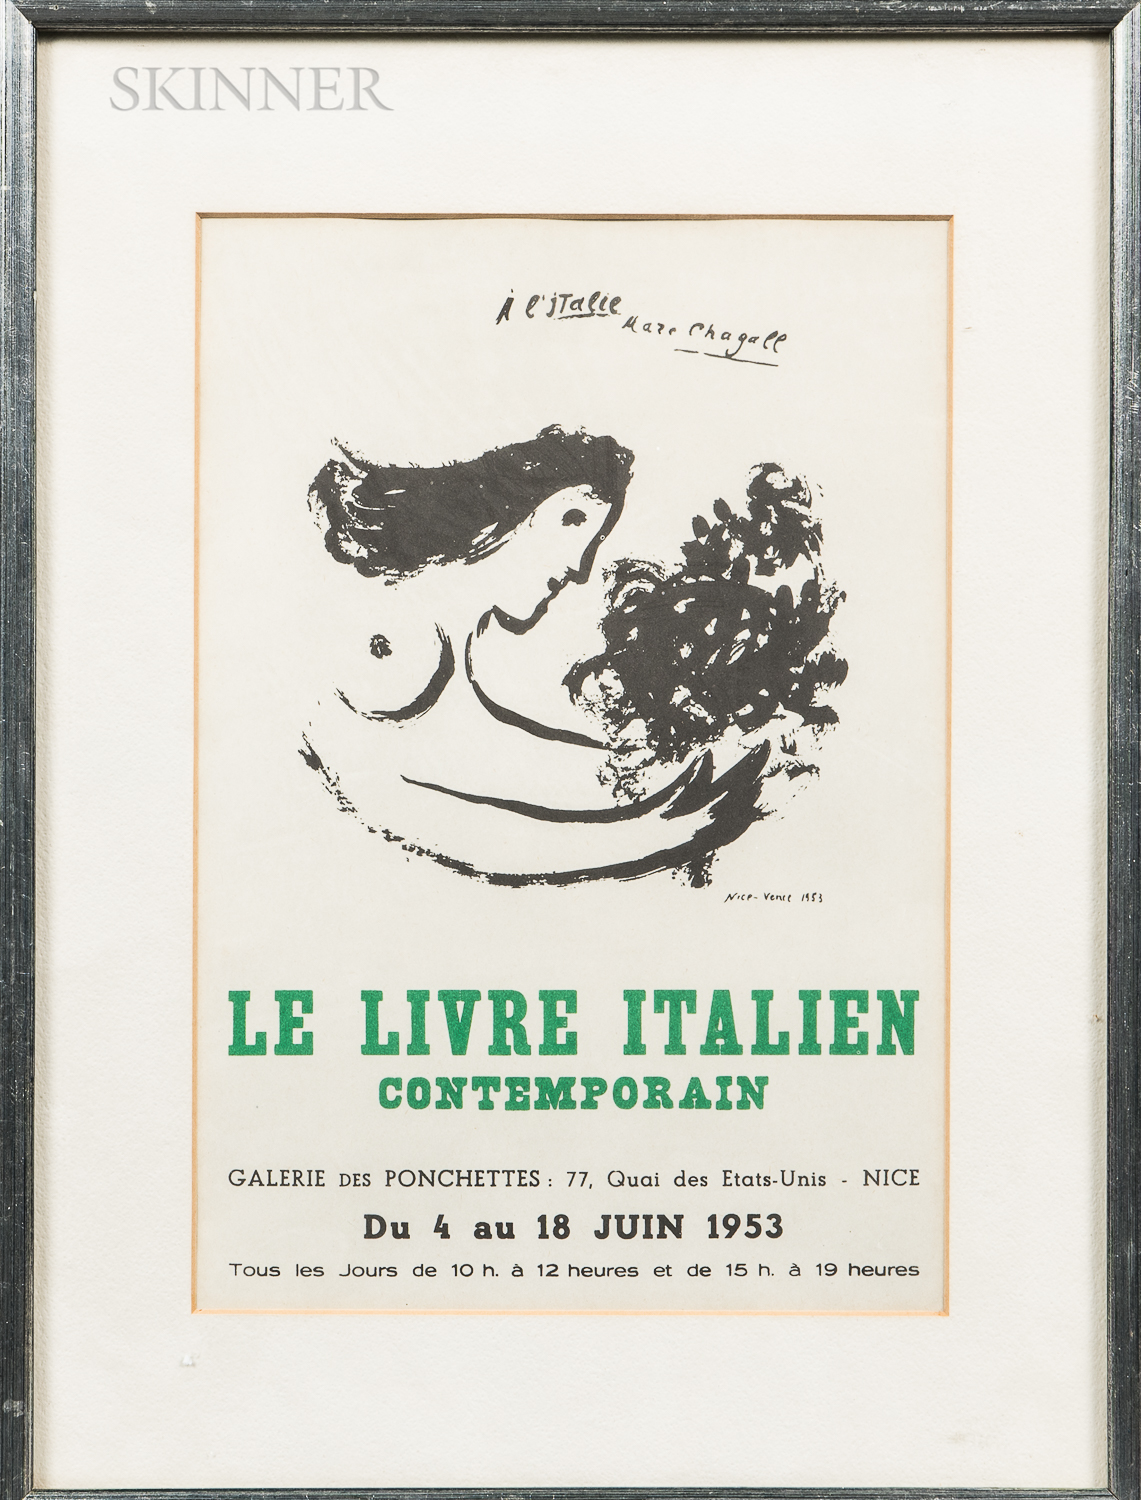 After Marc Chagall (Russian/French, 1887-1985) Le Livre Italien Contemporain, 1953 Exhibition Poster from Galerie des Ponchettes, Nice.